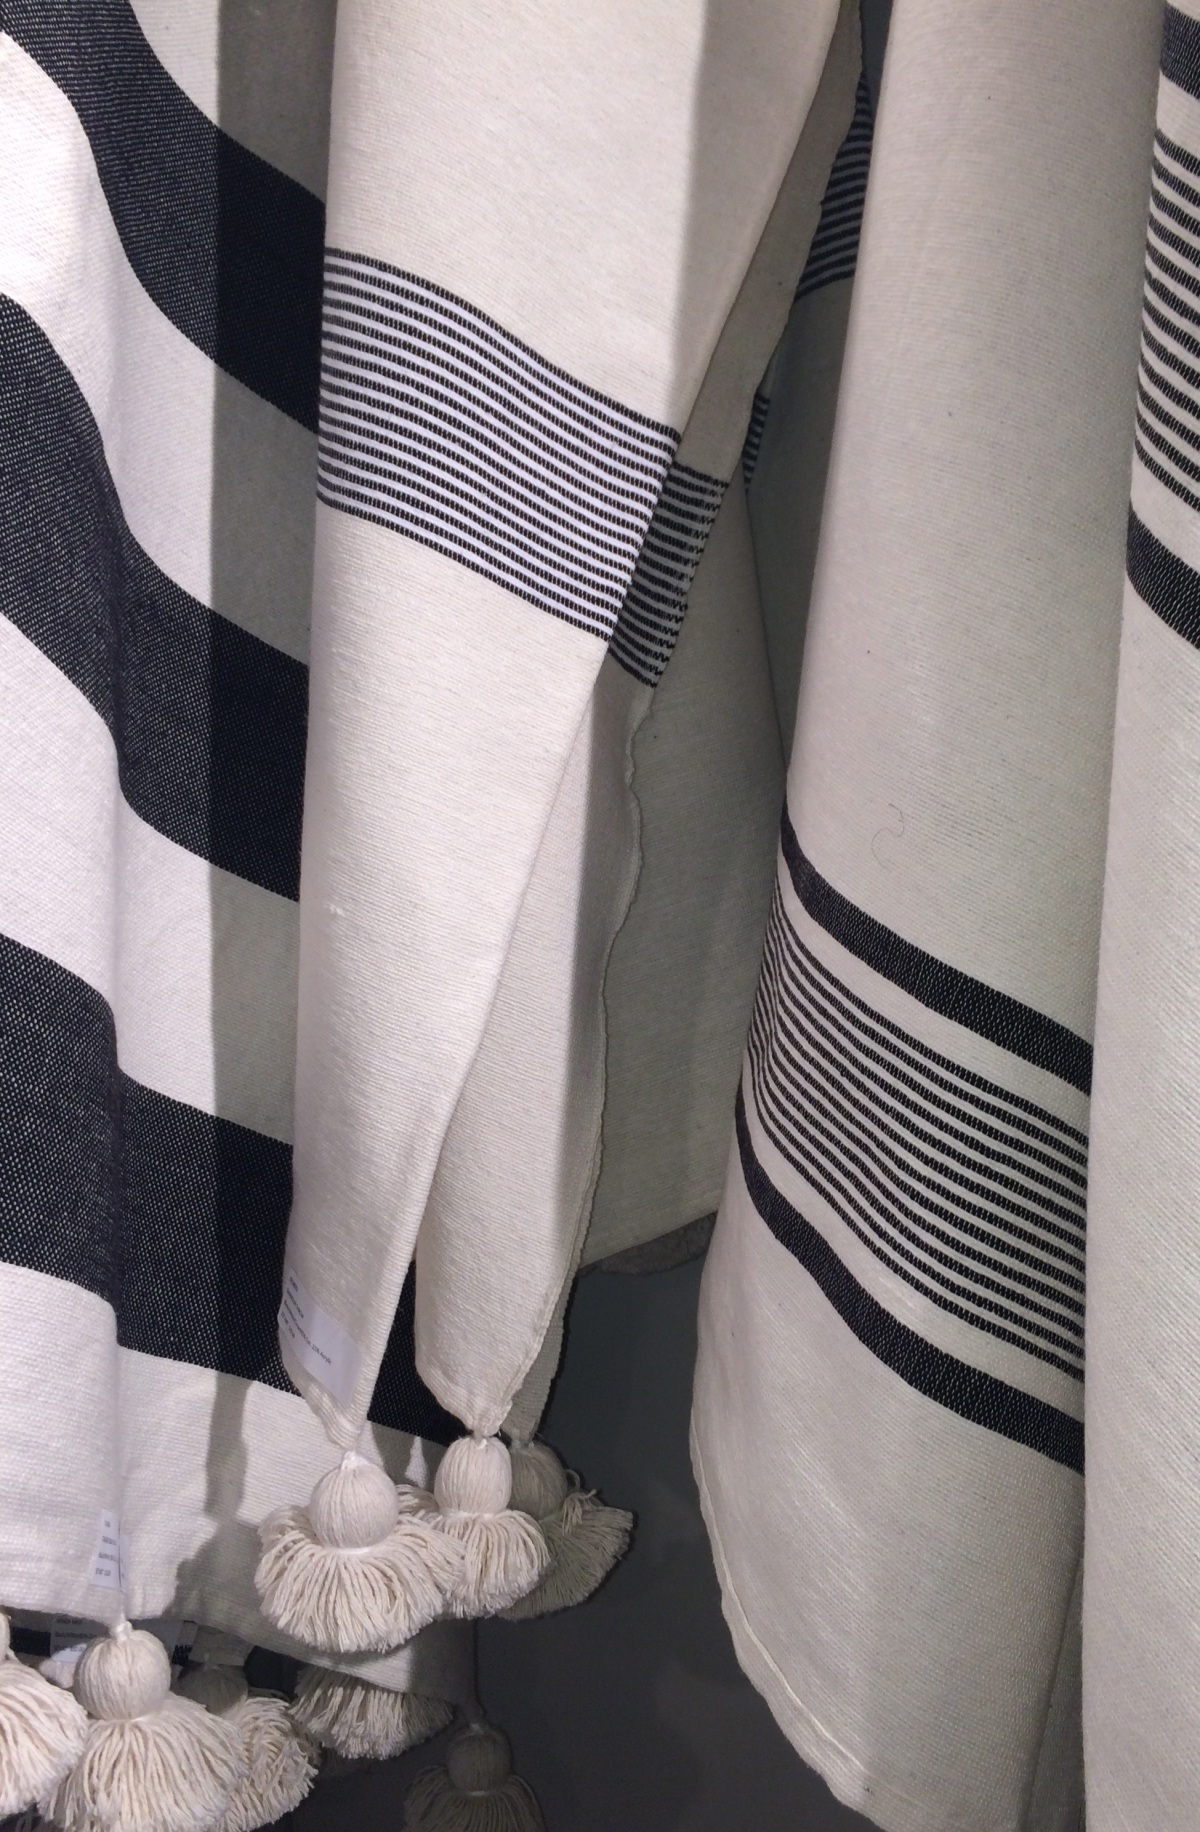 casual luxury...cotton throws in ivory + navyblack and a bit of white; hefty weave...gorgeous on a linen sofa, the back of an adirondack chair...perfect for chilly spring + summer evenings